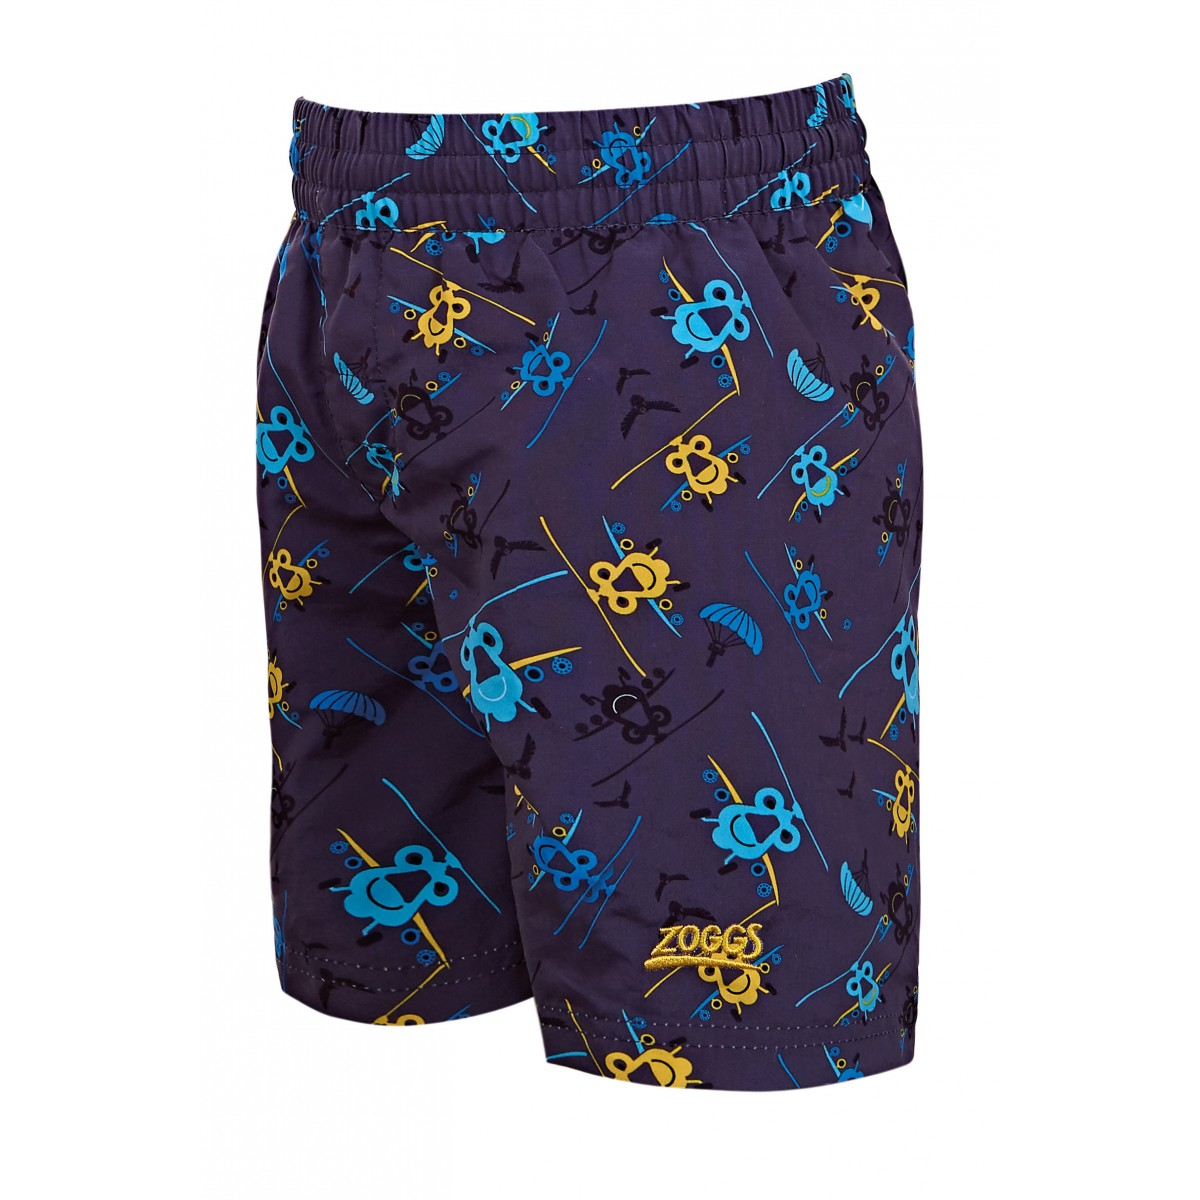 Zoggs Boys Chopper Watershort - Grey